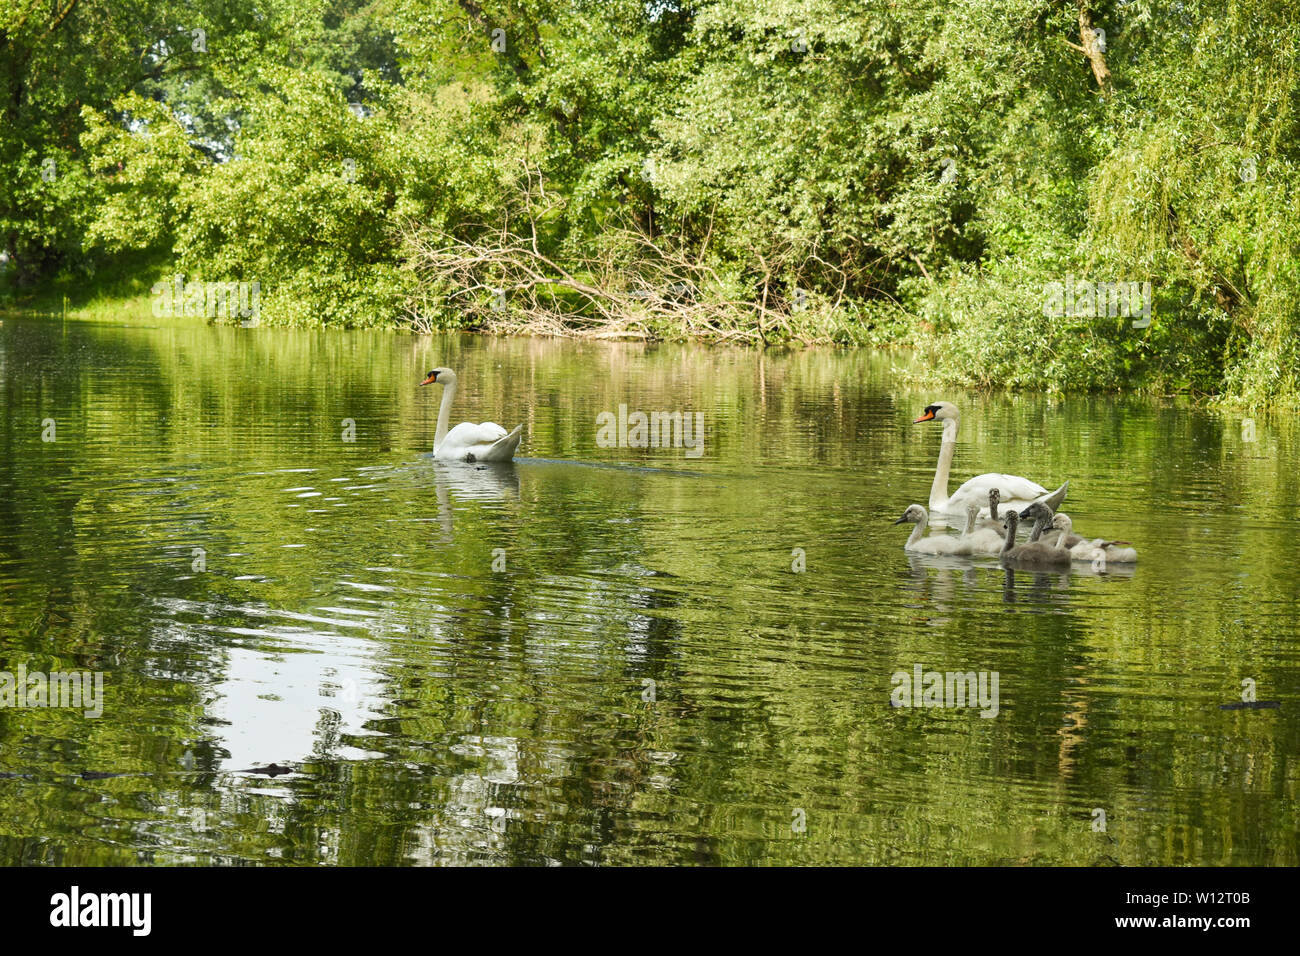 Swan family swimming in lake surrounded by green trees and bushes. Green foliage reflection on water. Stock Photo